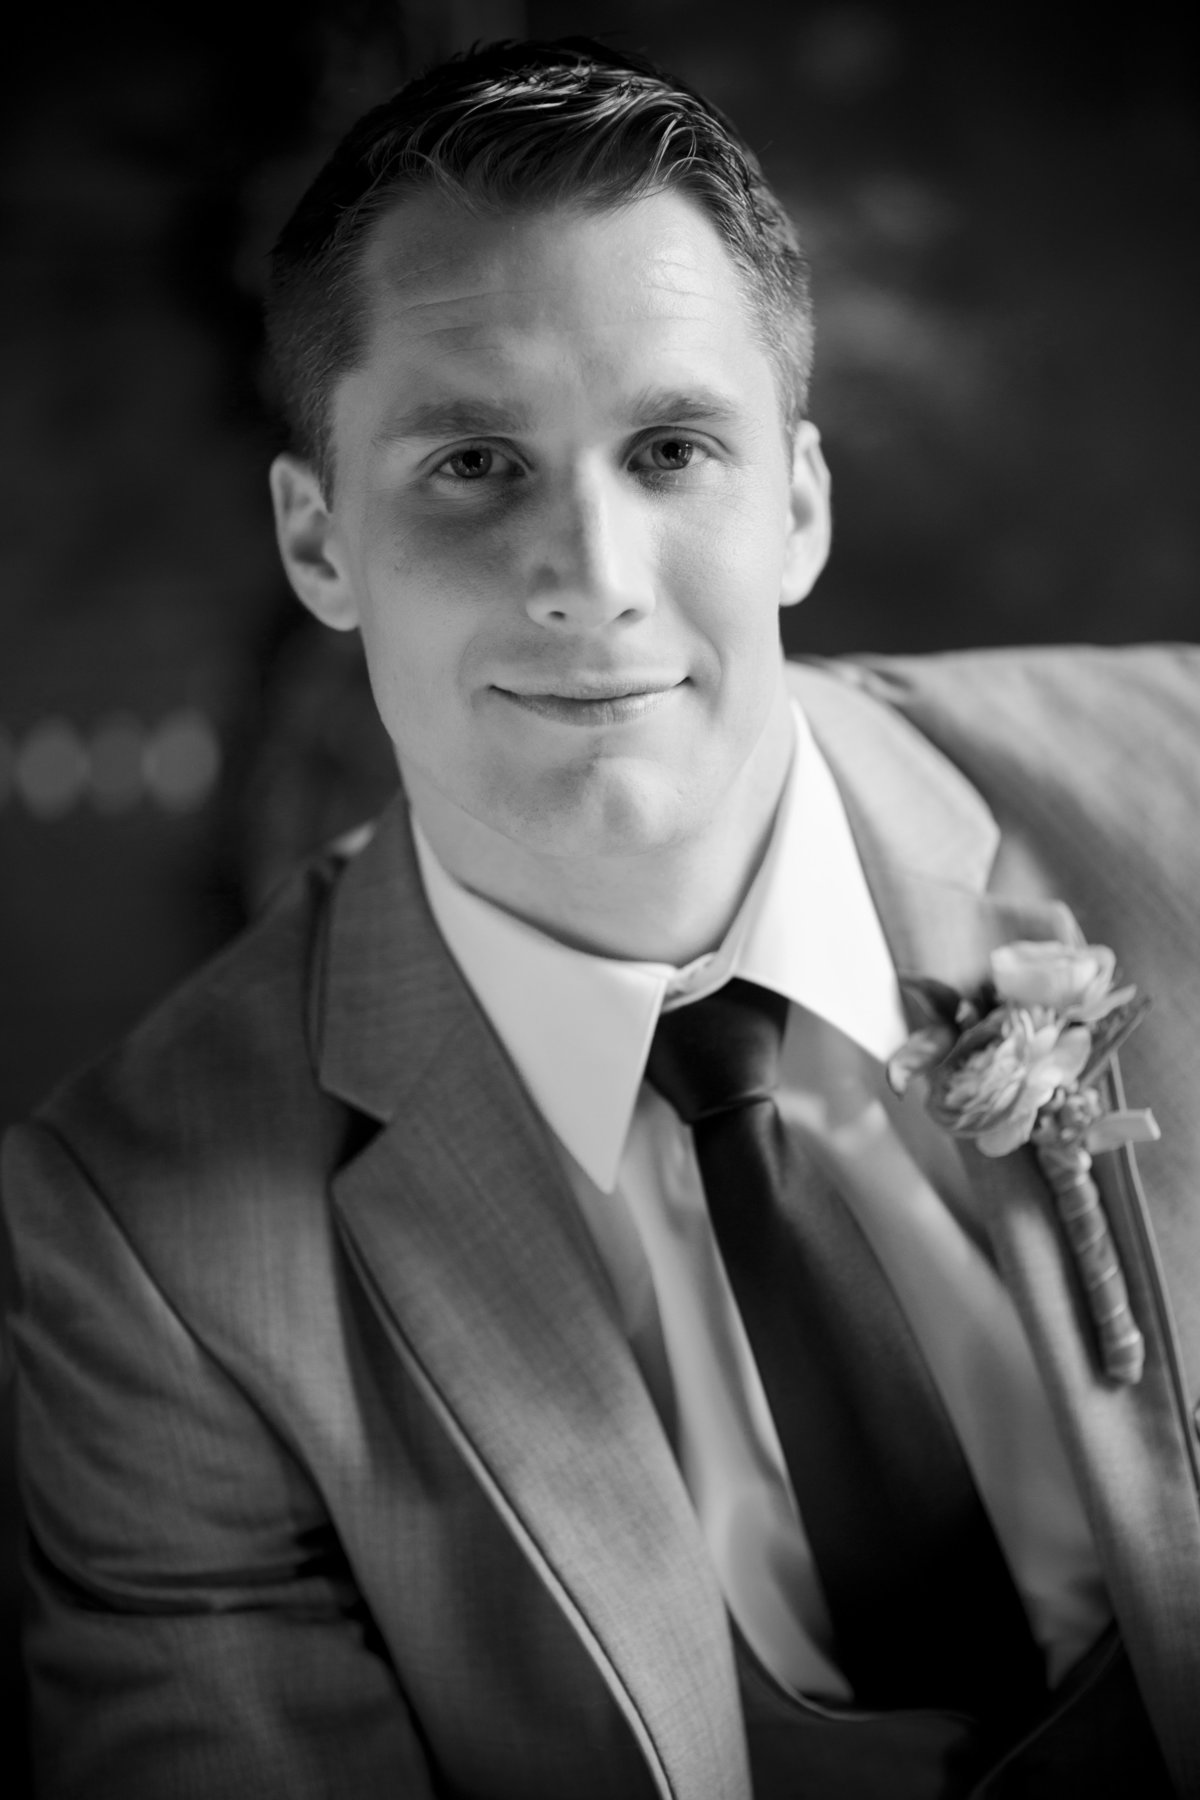 Black and White Portrait of Groom, National Press Club Wedding